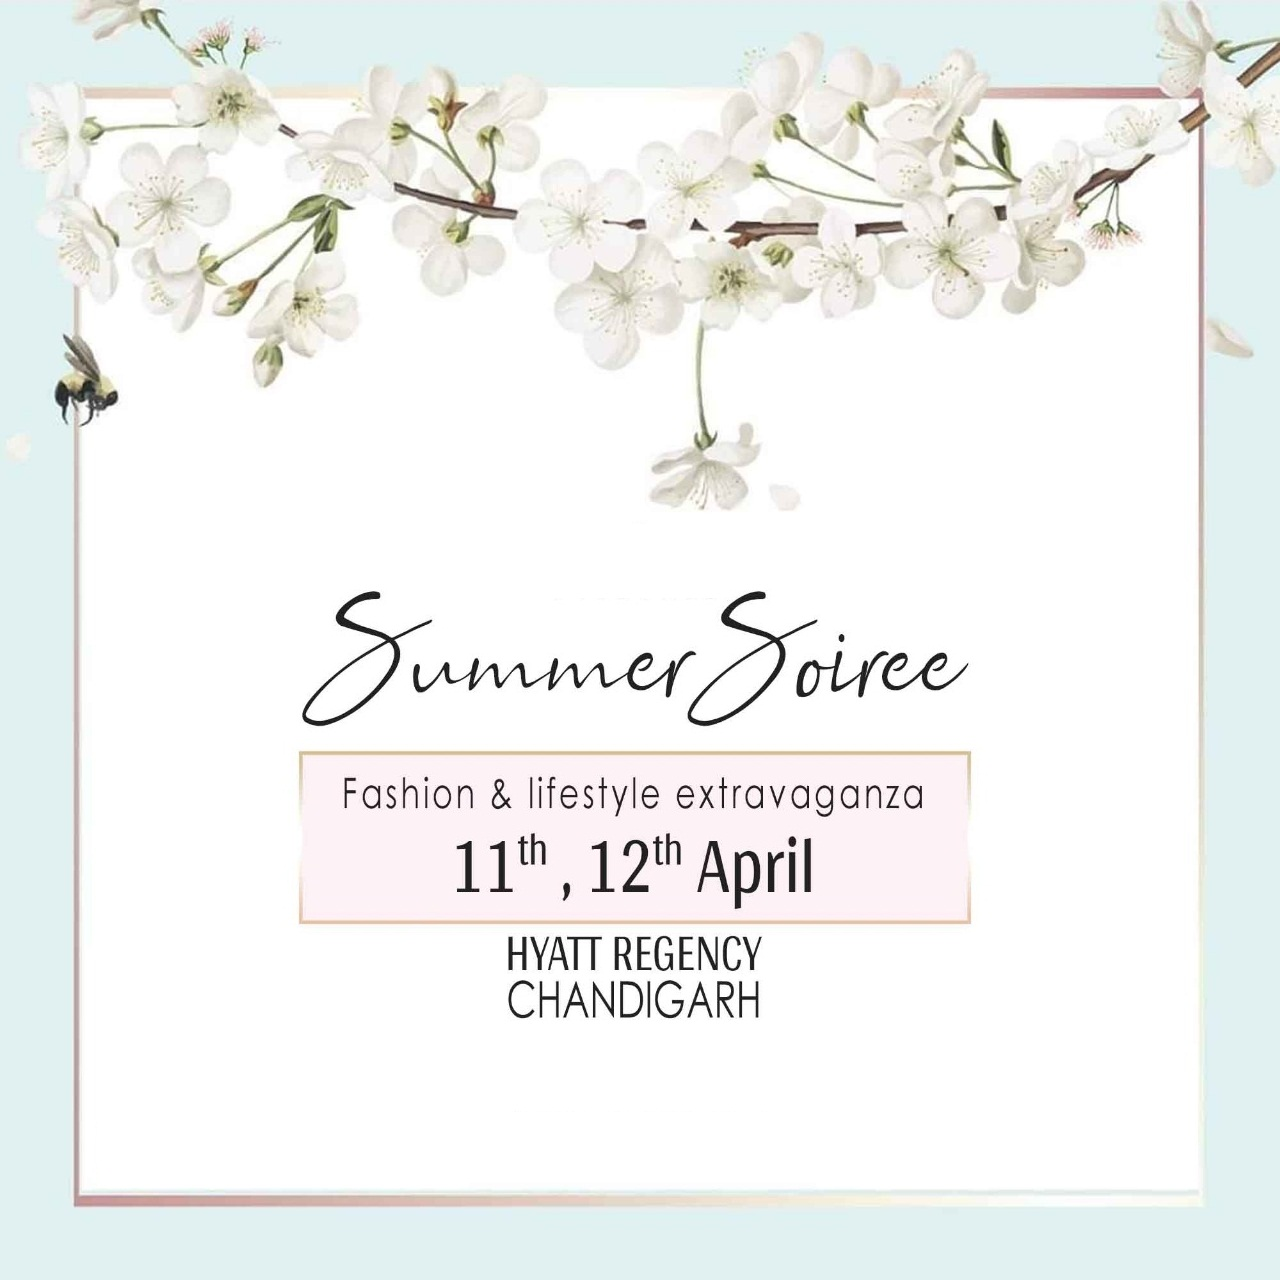 Summer Soiree Lifestyle Exhibition